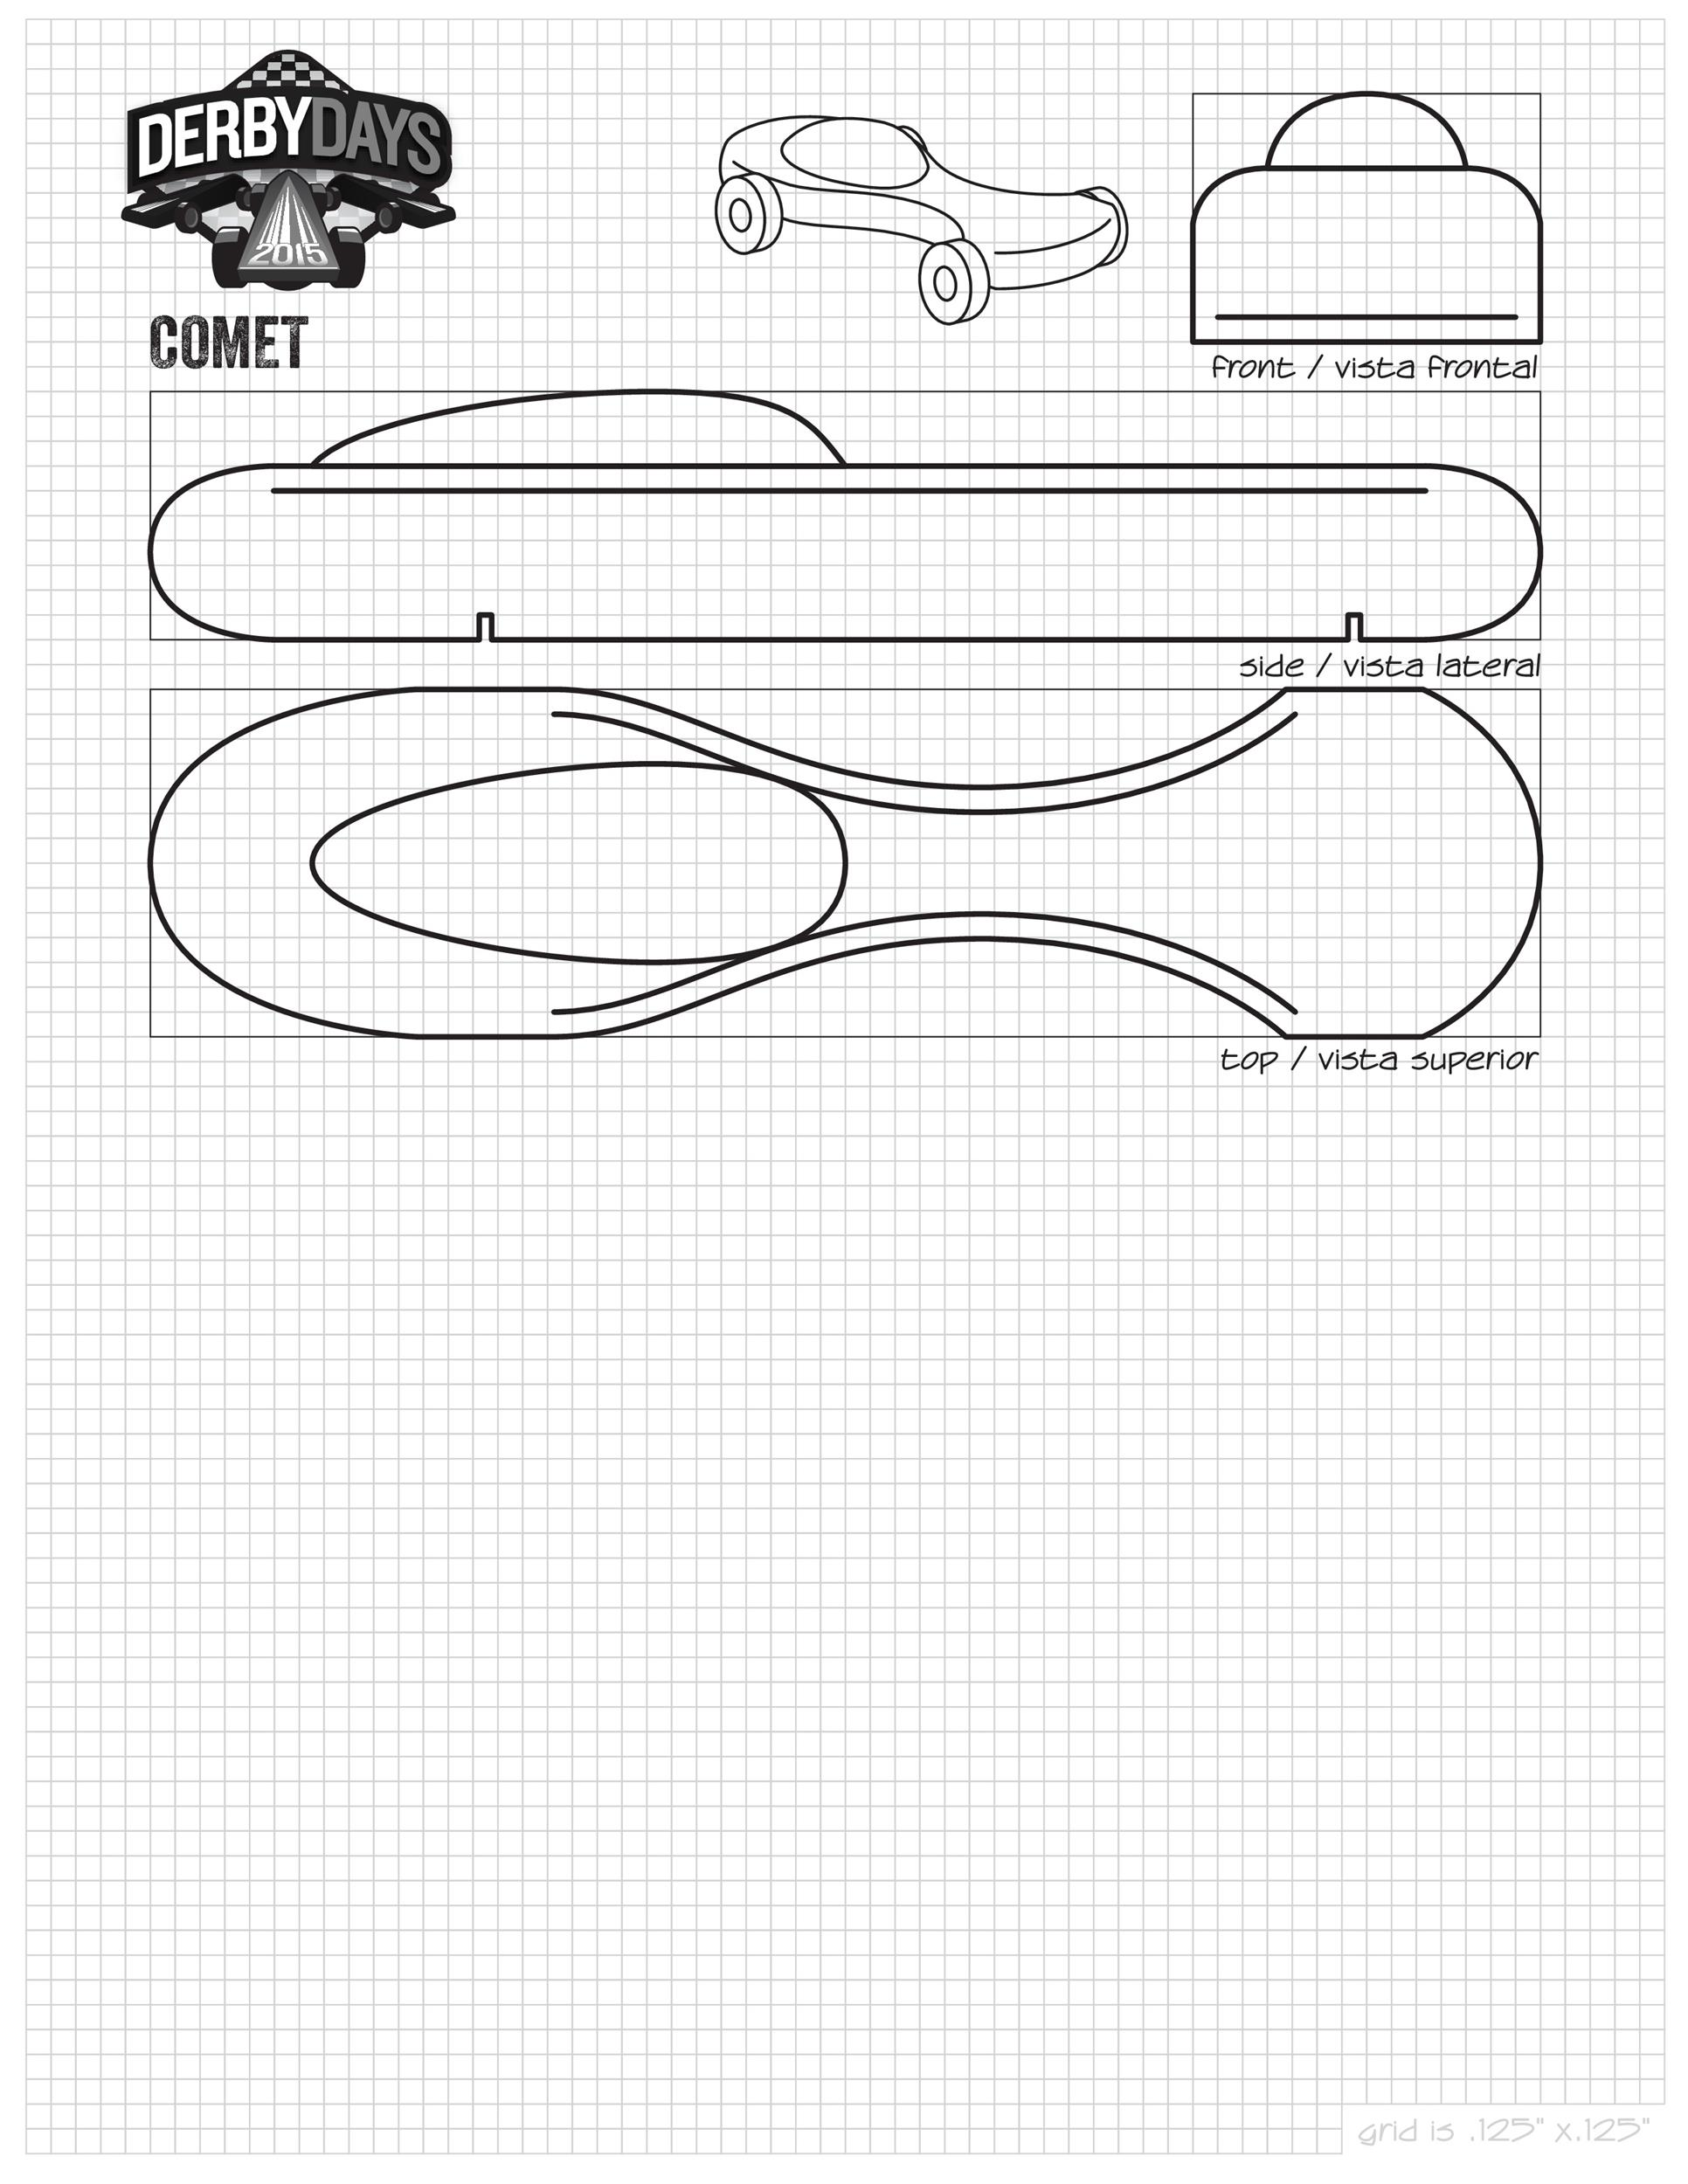 photograph about Printable Pinewood Derby Car Templates named 39 Remarkable Pinewood Derby Auto Programs Templates ᐅ